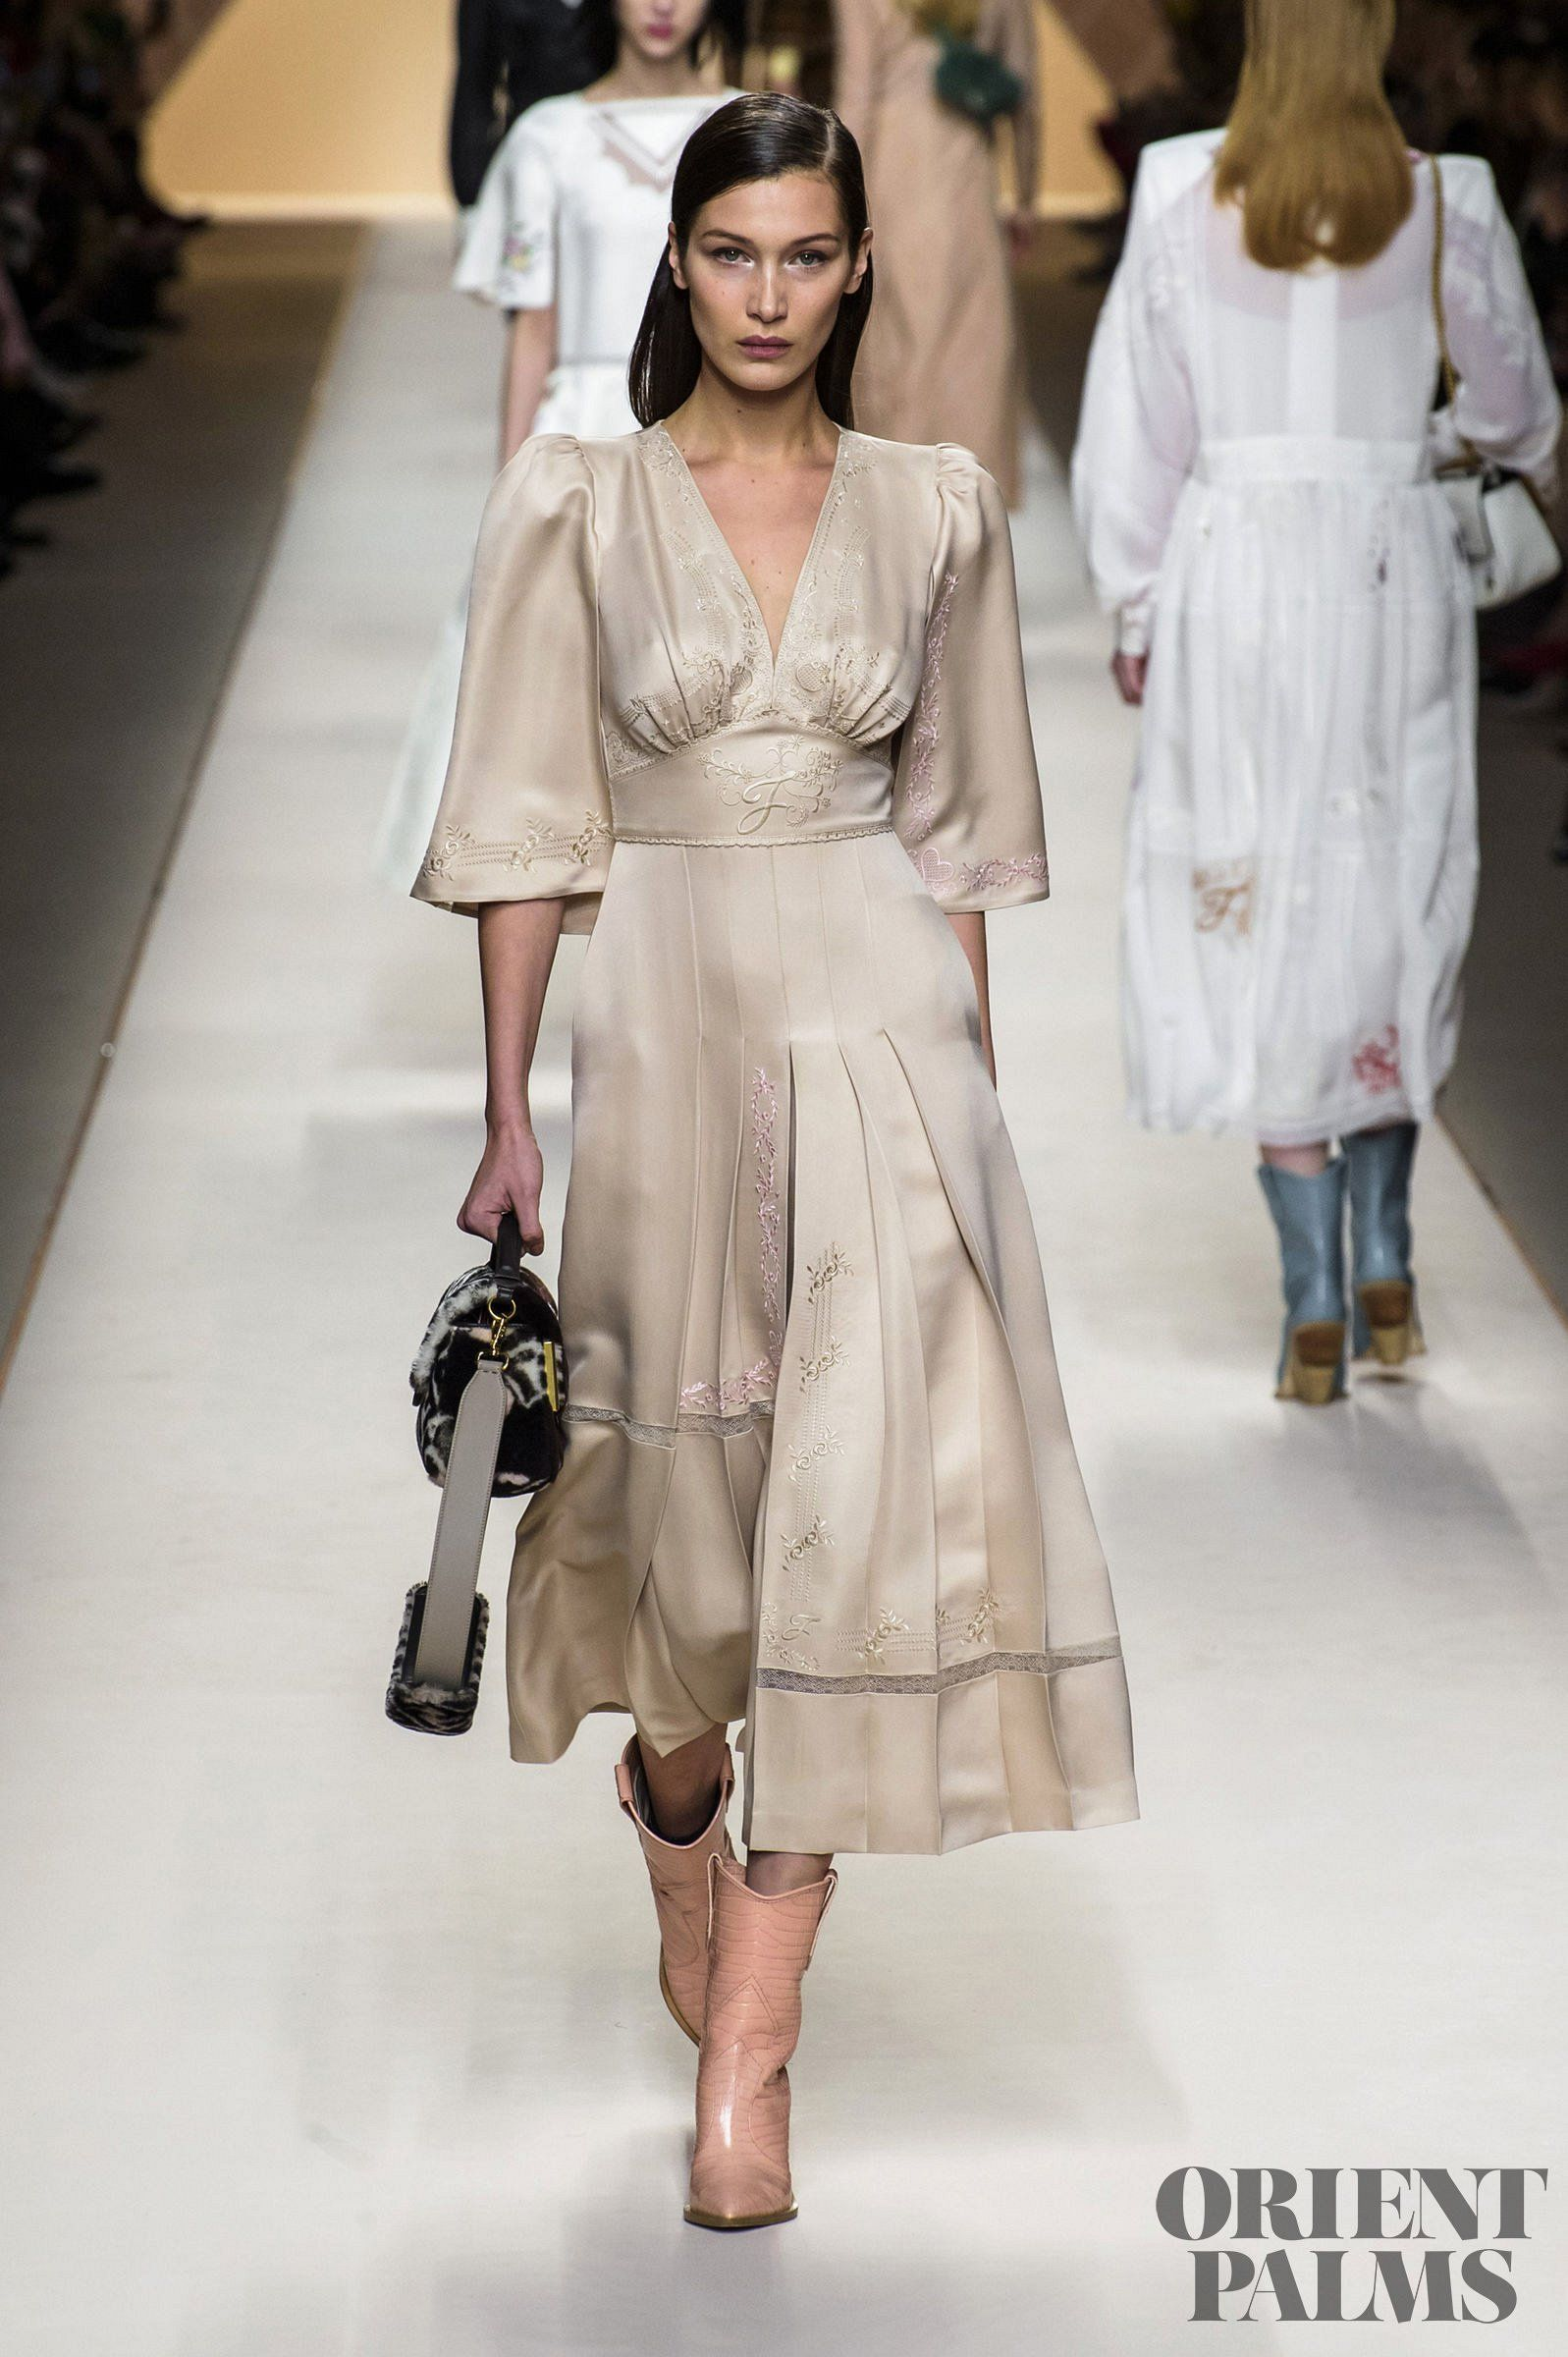 3ee12aba1ed7b Fendi Fall-winter 2018-2019 - Ready-to-Wear  clothes  beautifulclothes   fashion  apparel  fashiontrends  style  stylewatch  styletrends   fashioninspiration ...